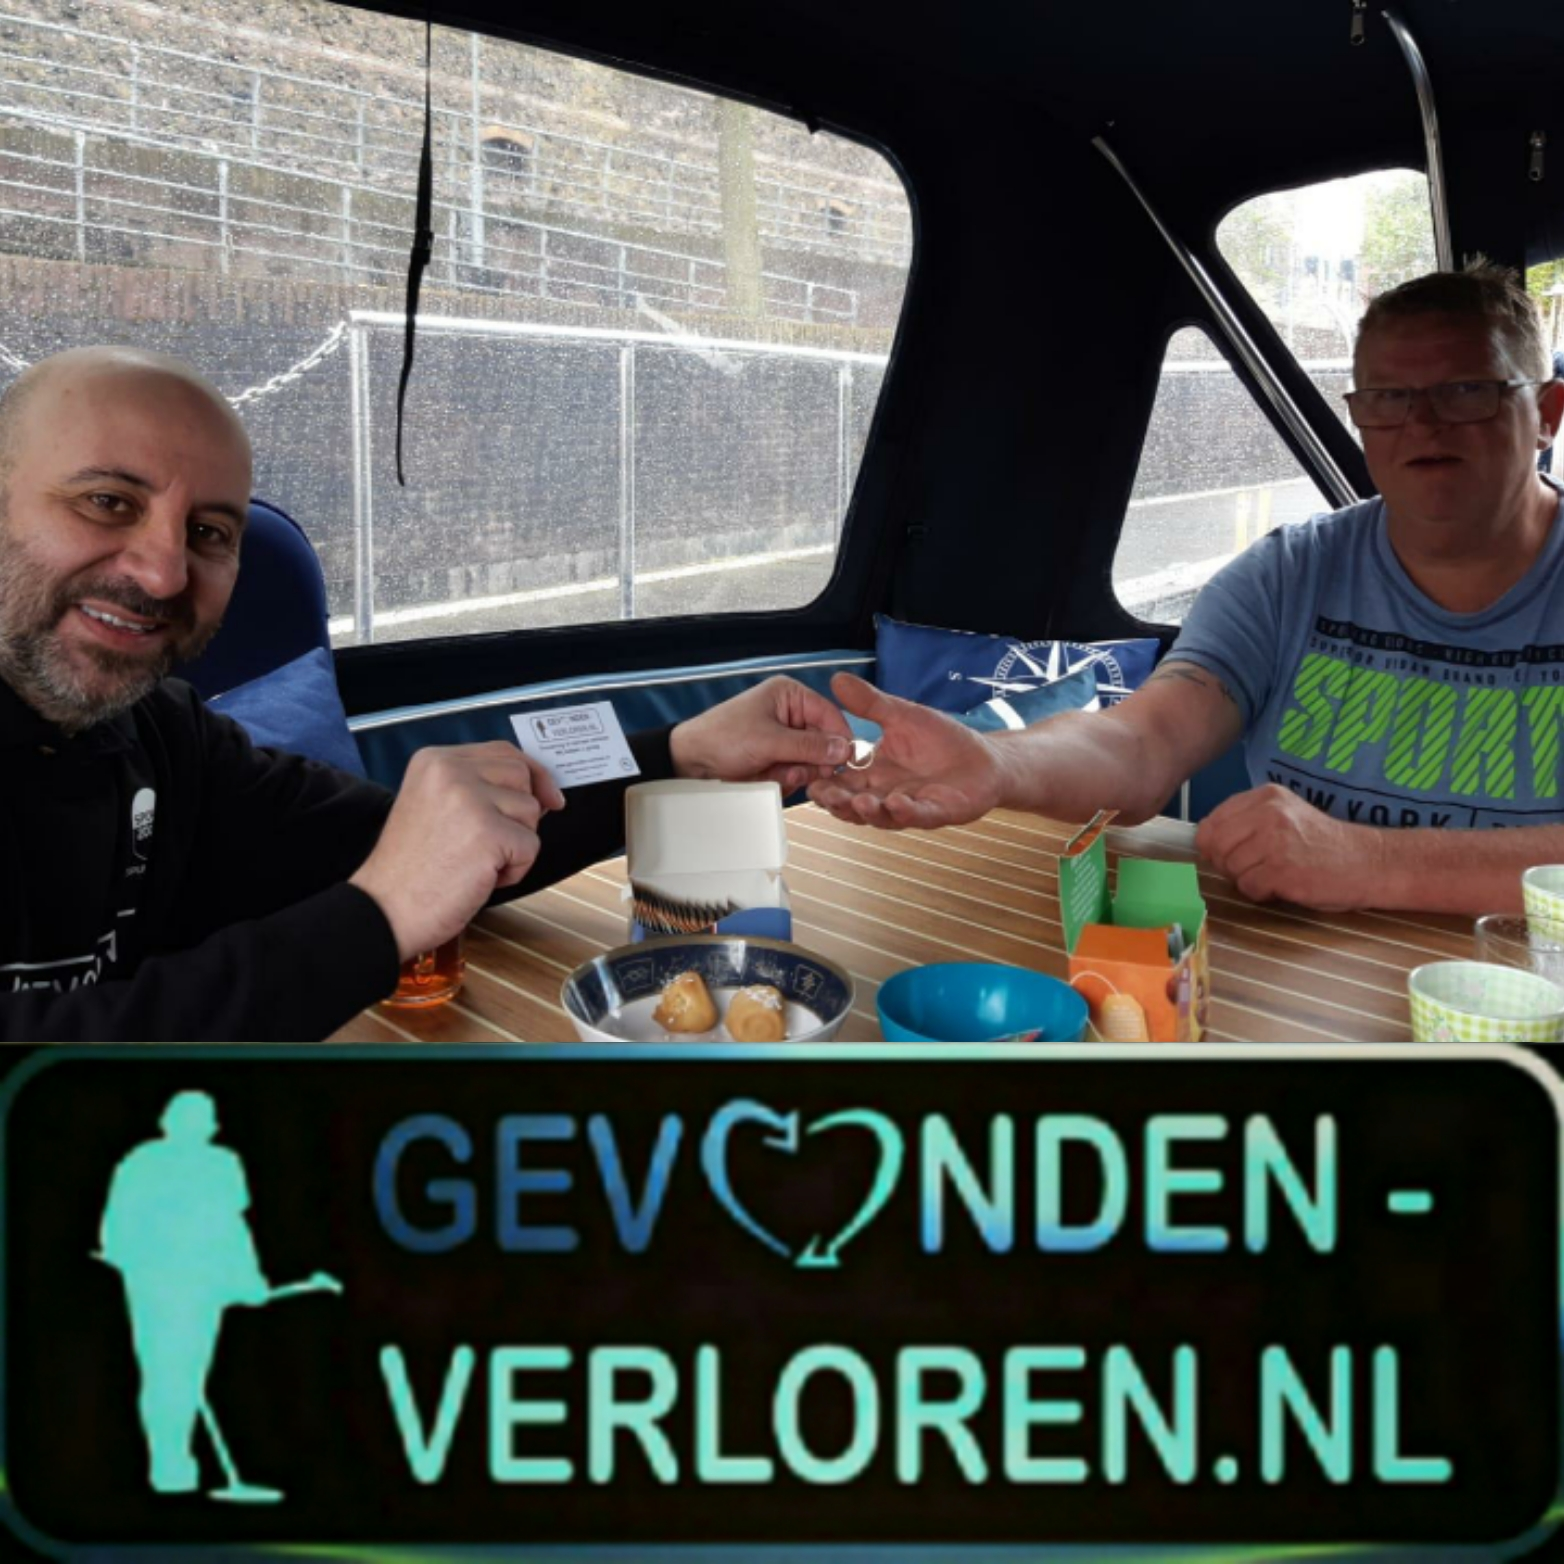 Trouwring opgedoken